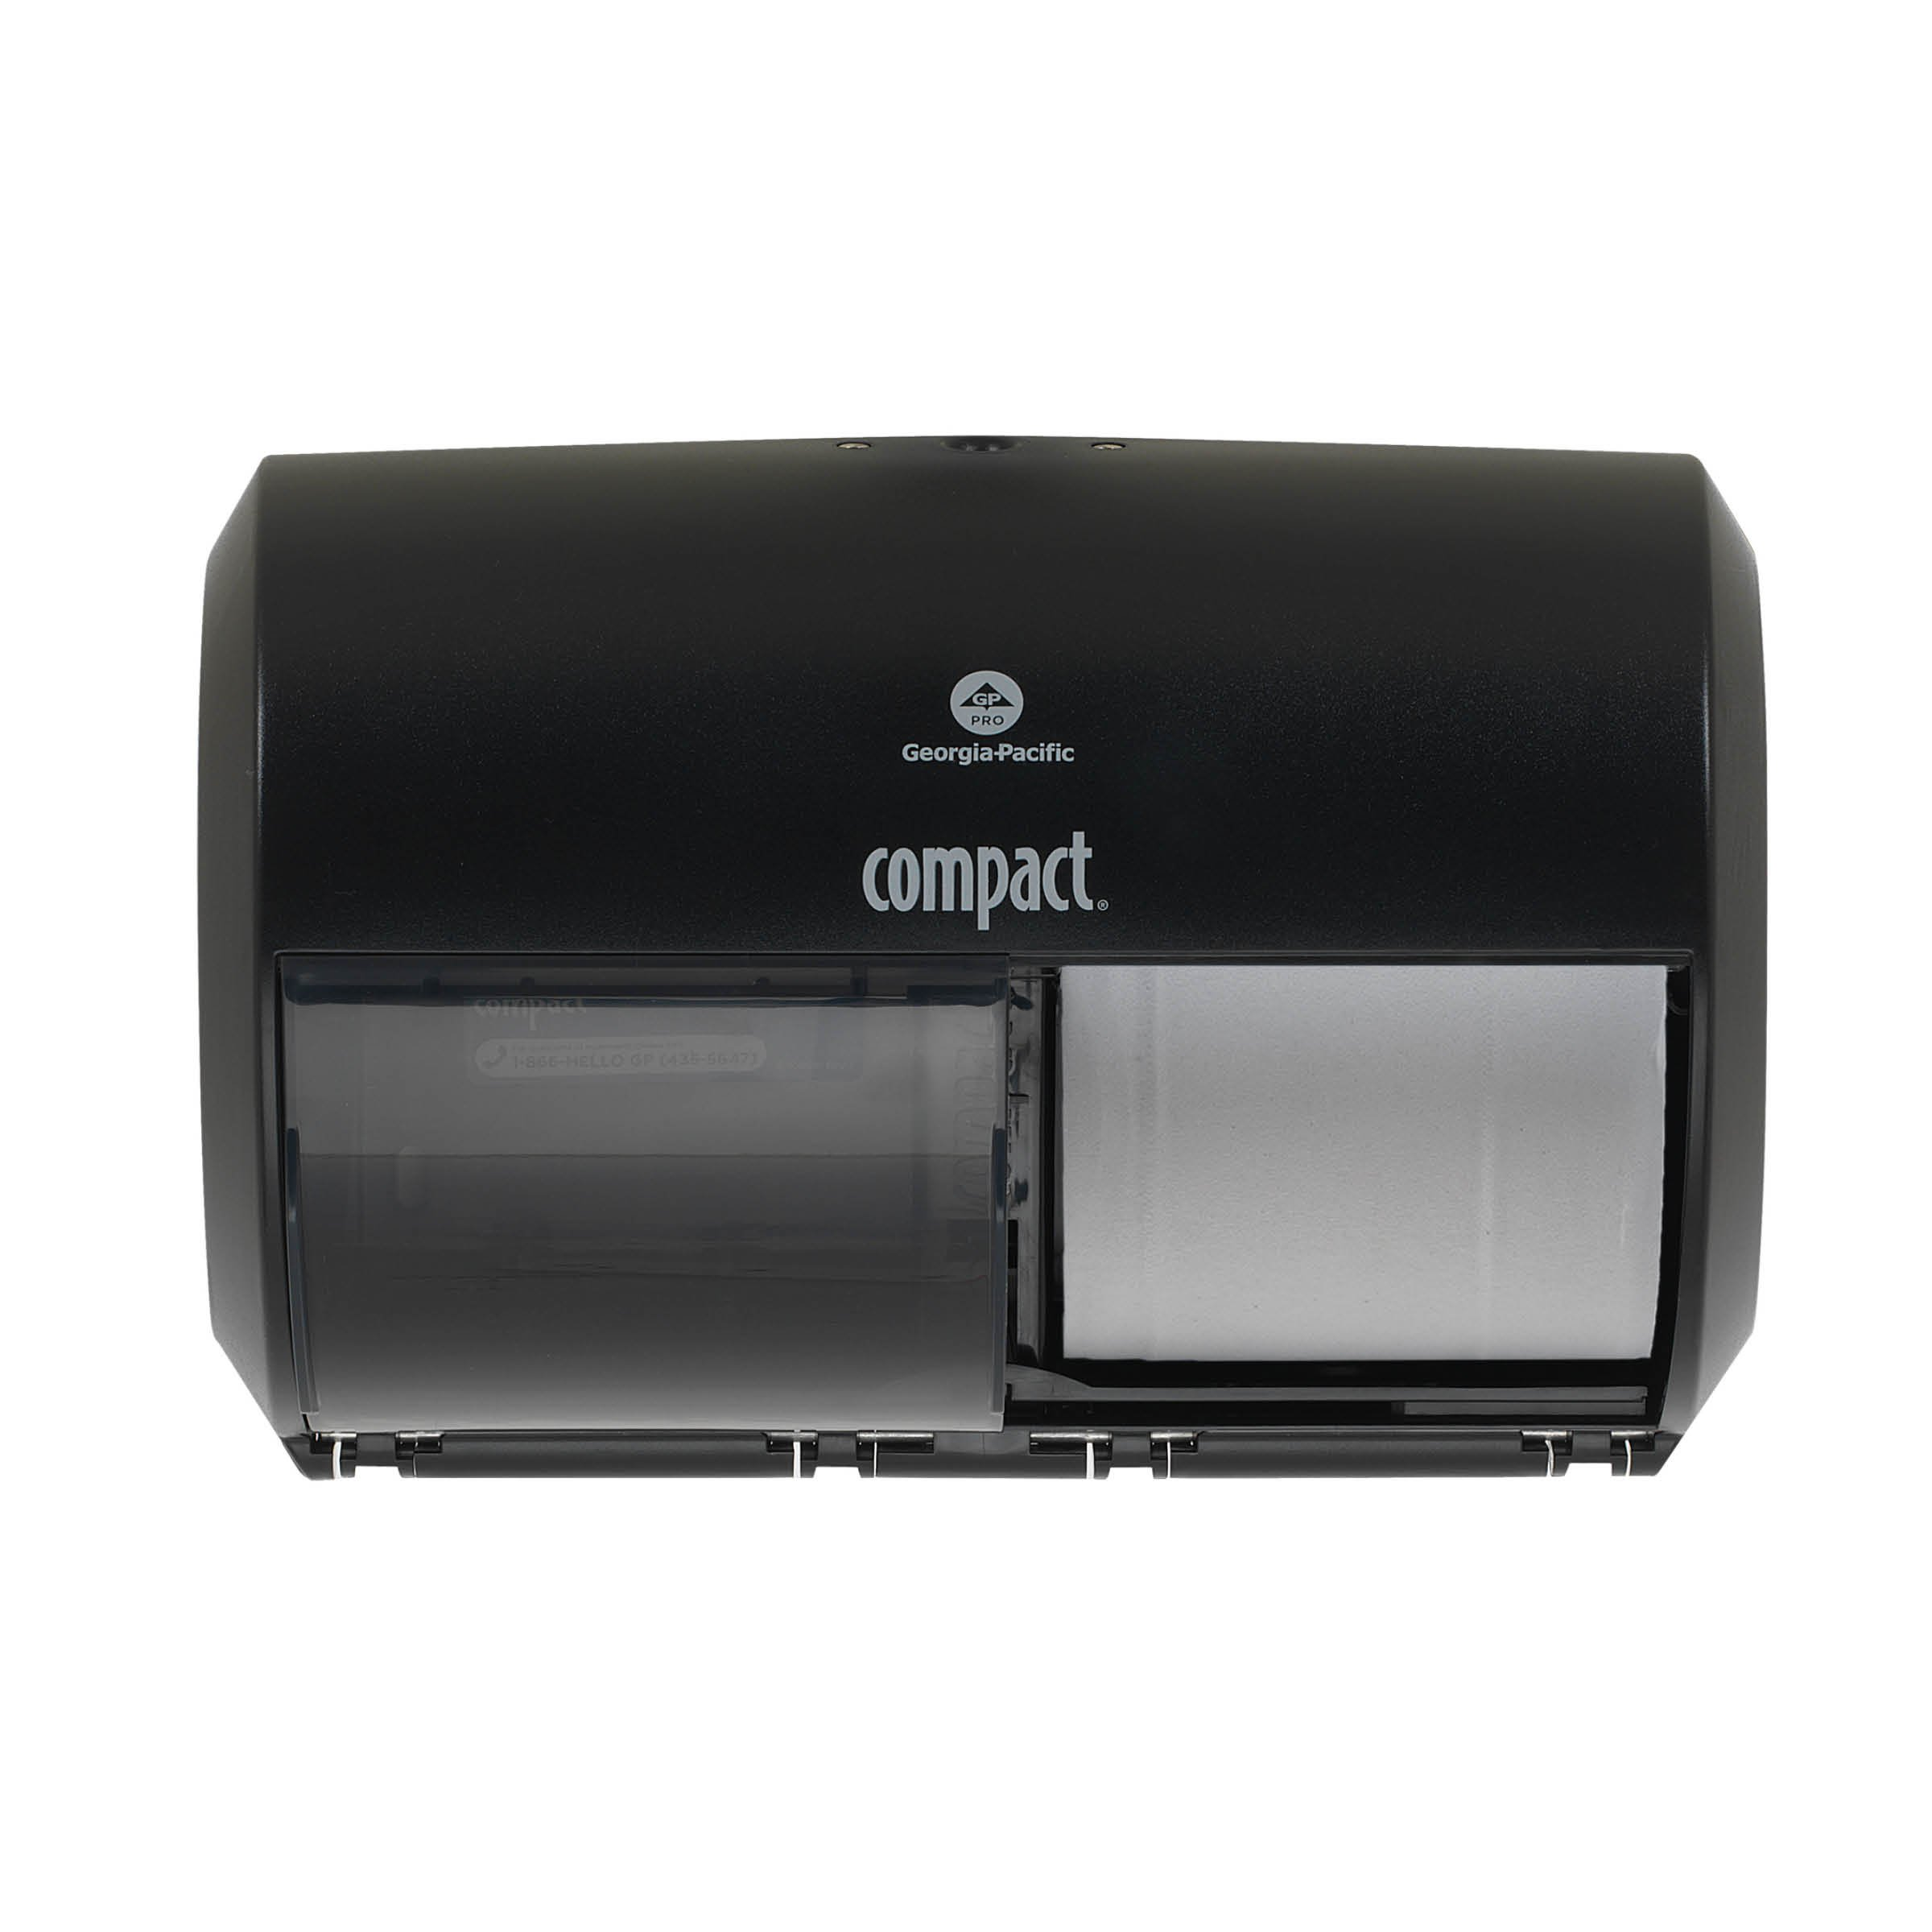 """Compact 2-Roll Side-by-Side Coreless High-Capacity Toilet Paper Dispenser by GP PRO (Georgia-Pacific), Black, 56784A, 10.120"""" W x 6.750"""" D x 7.120"""" H"""